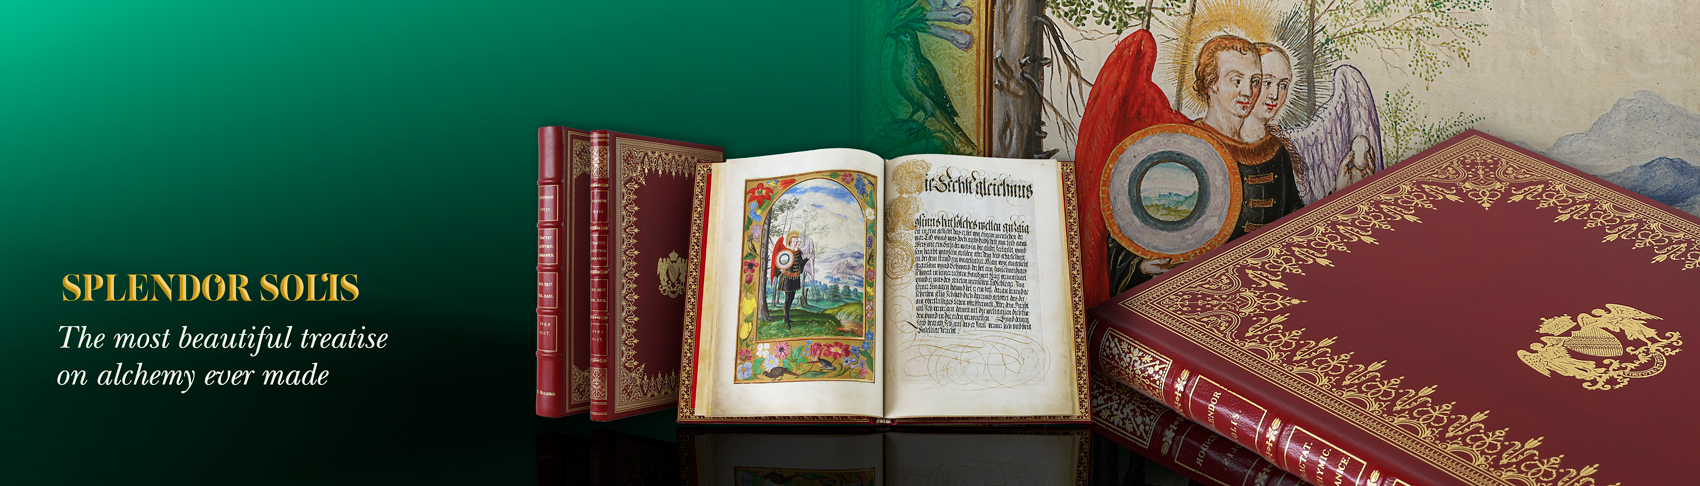 Splendor Solis from the British Library is considered the most beautiful treatise on alchemy ever made.